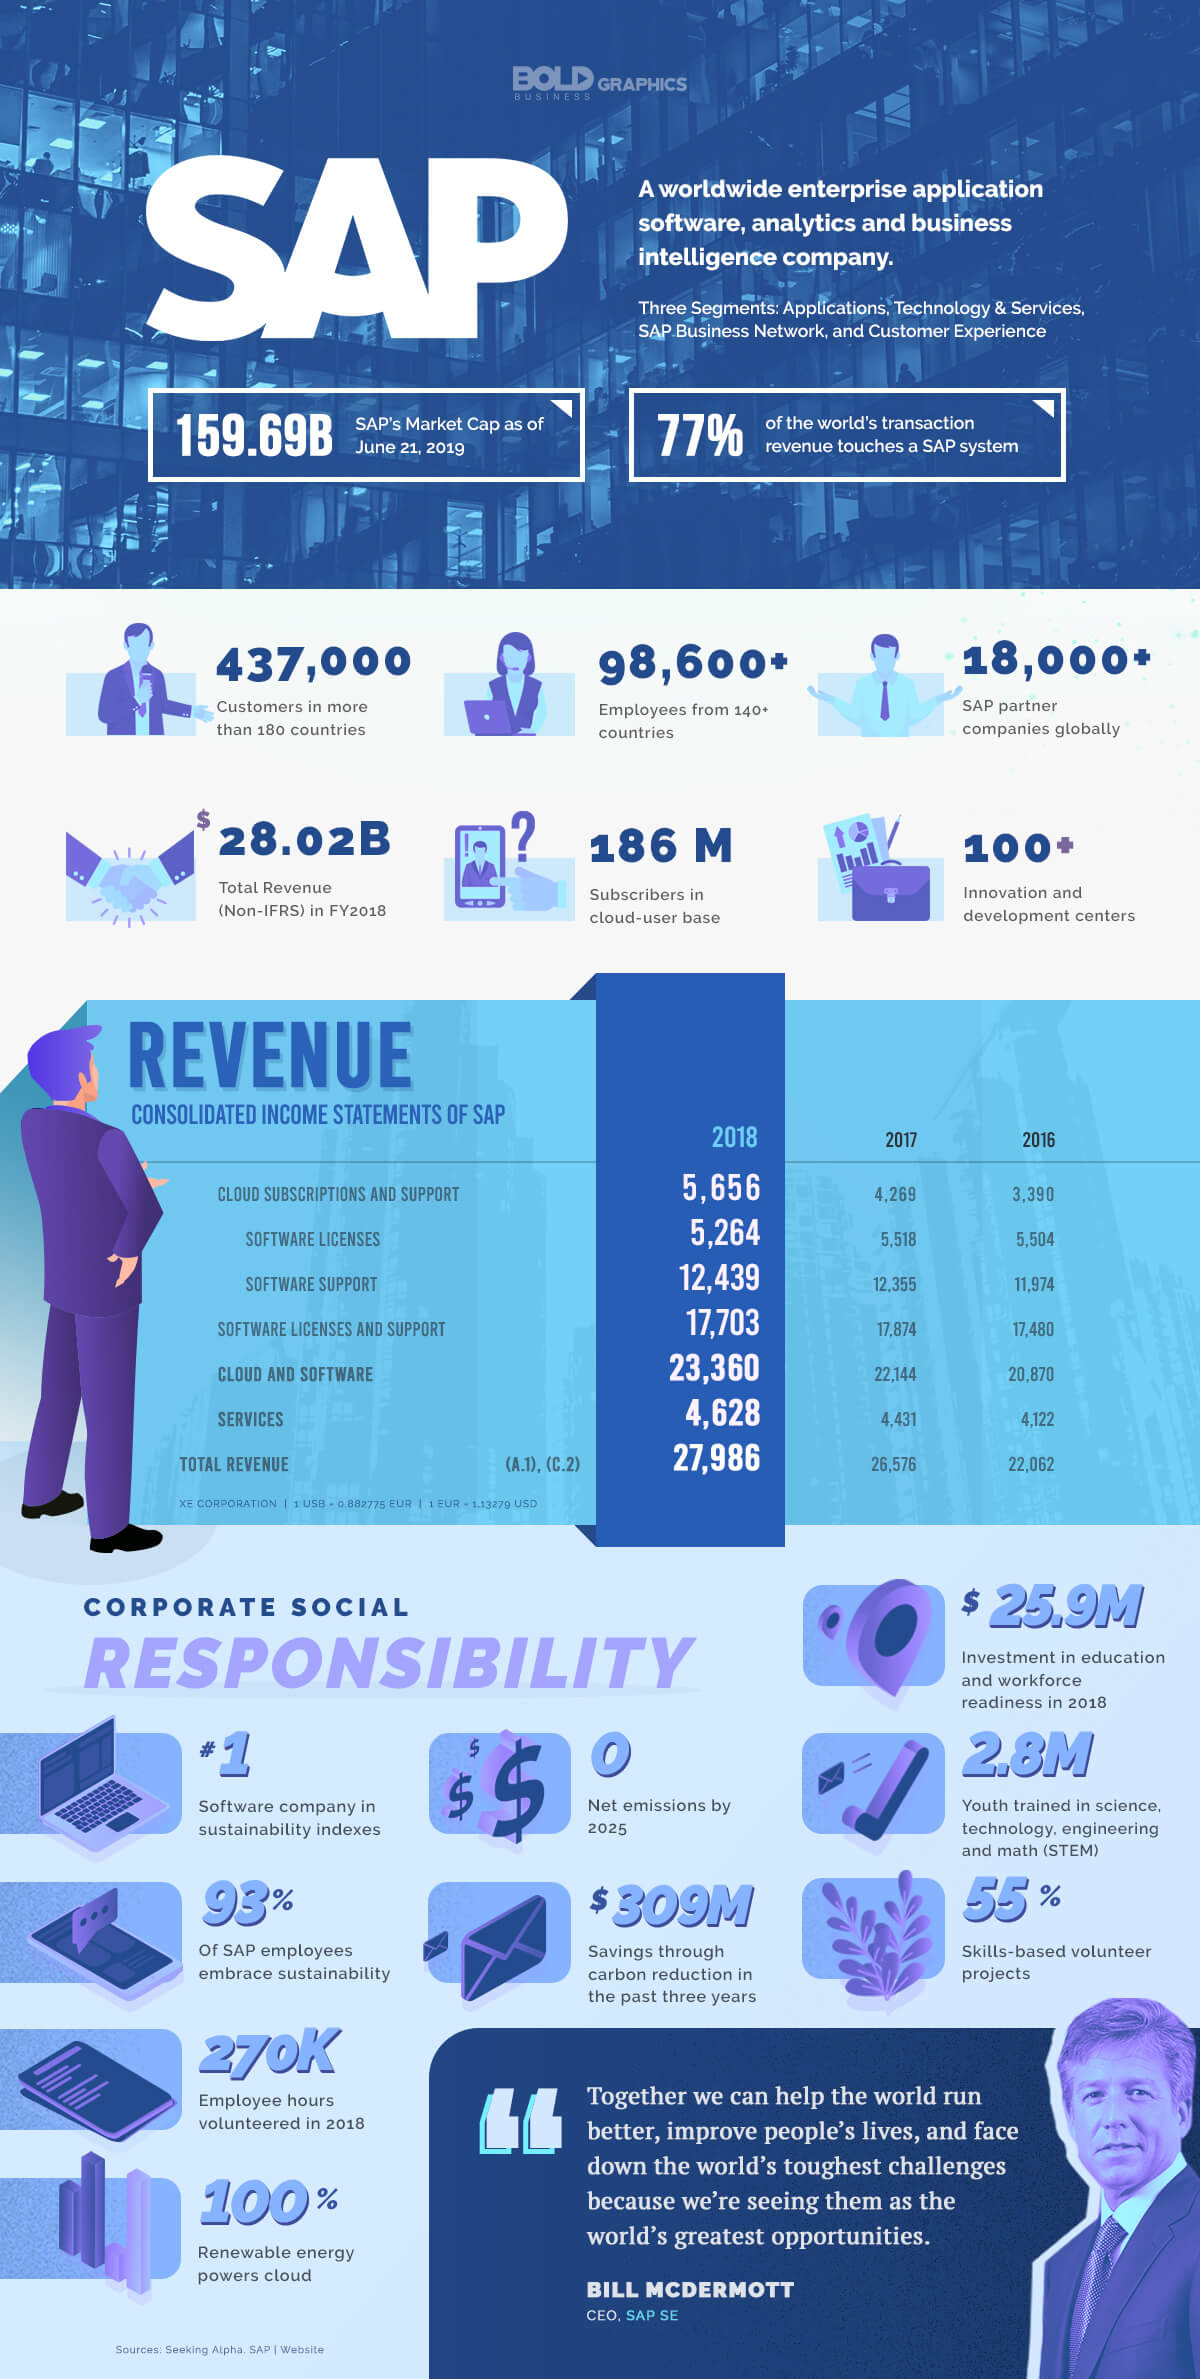 infographic image of SAP